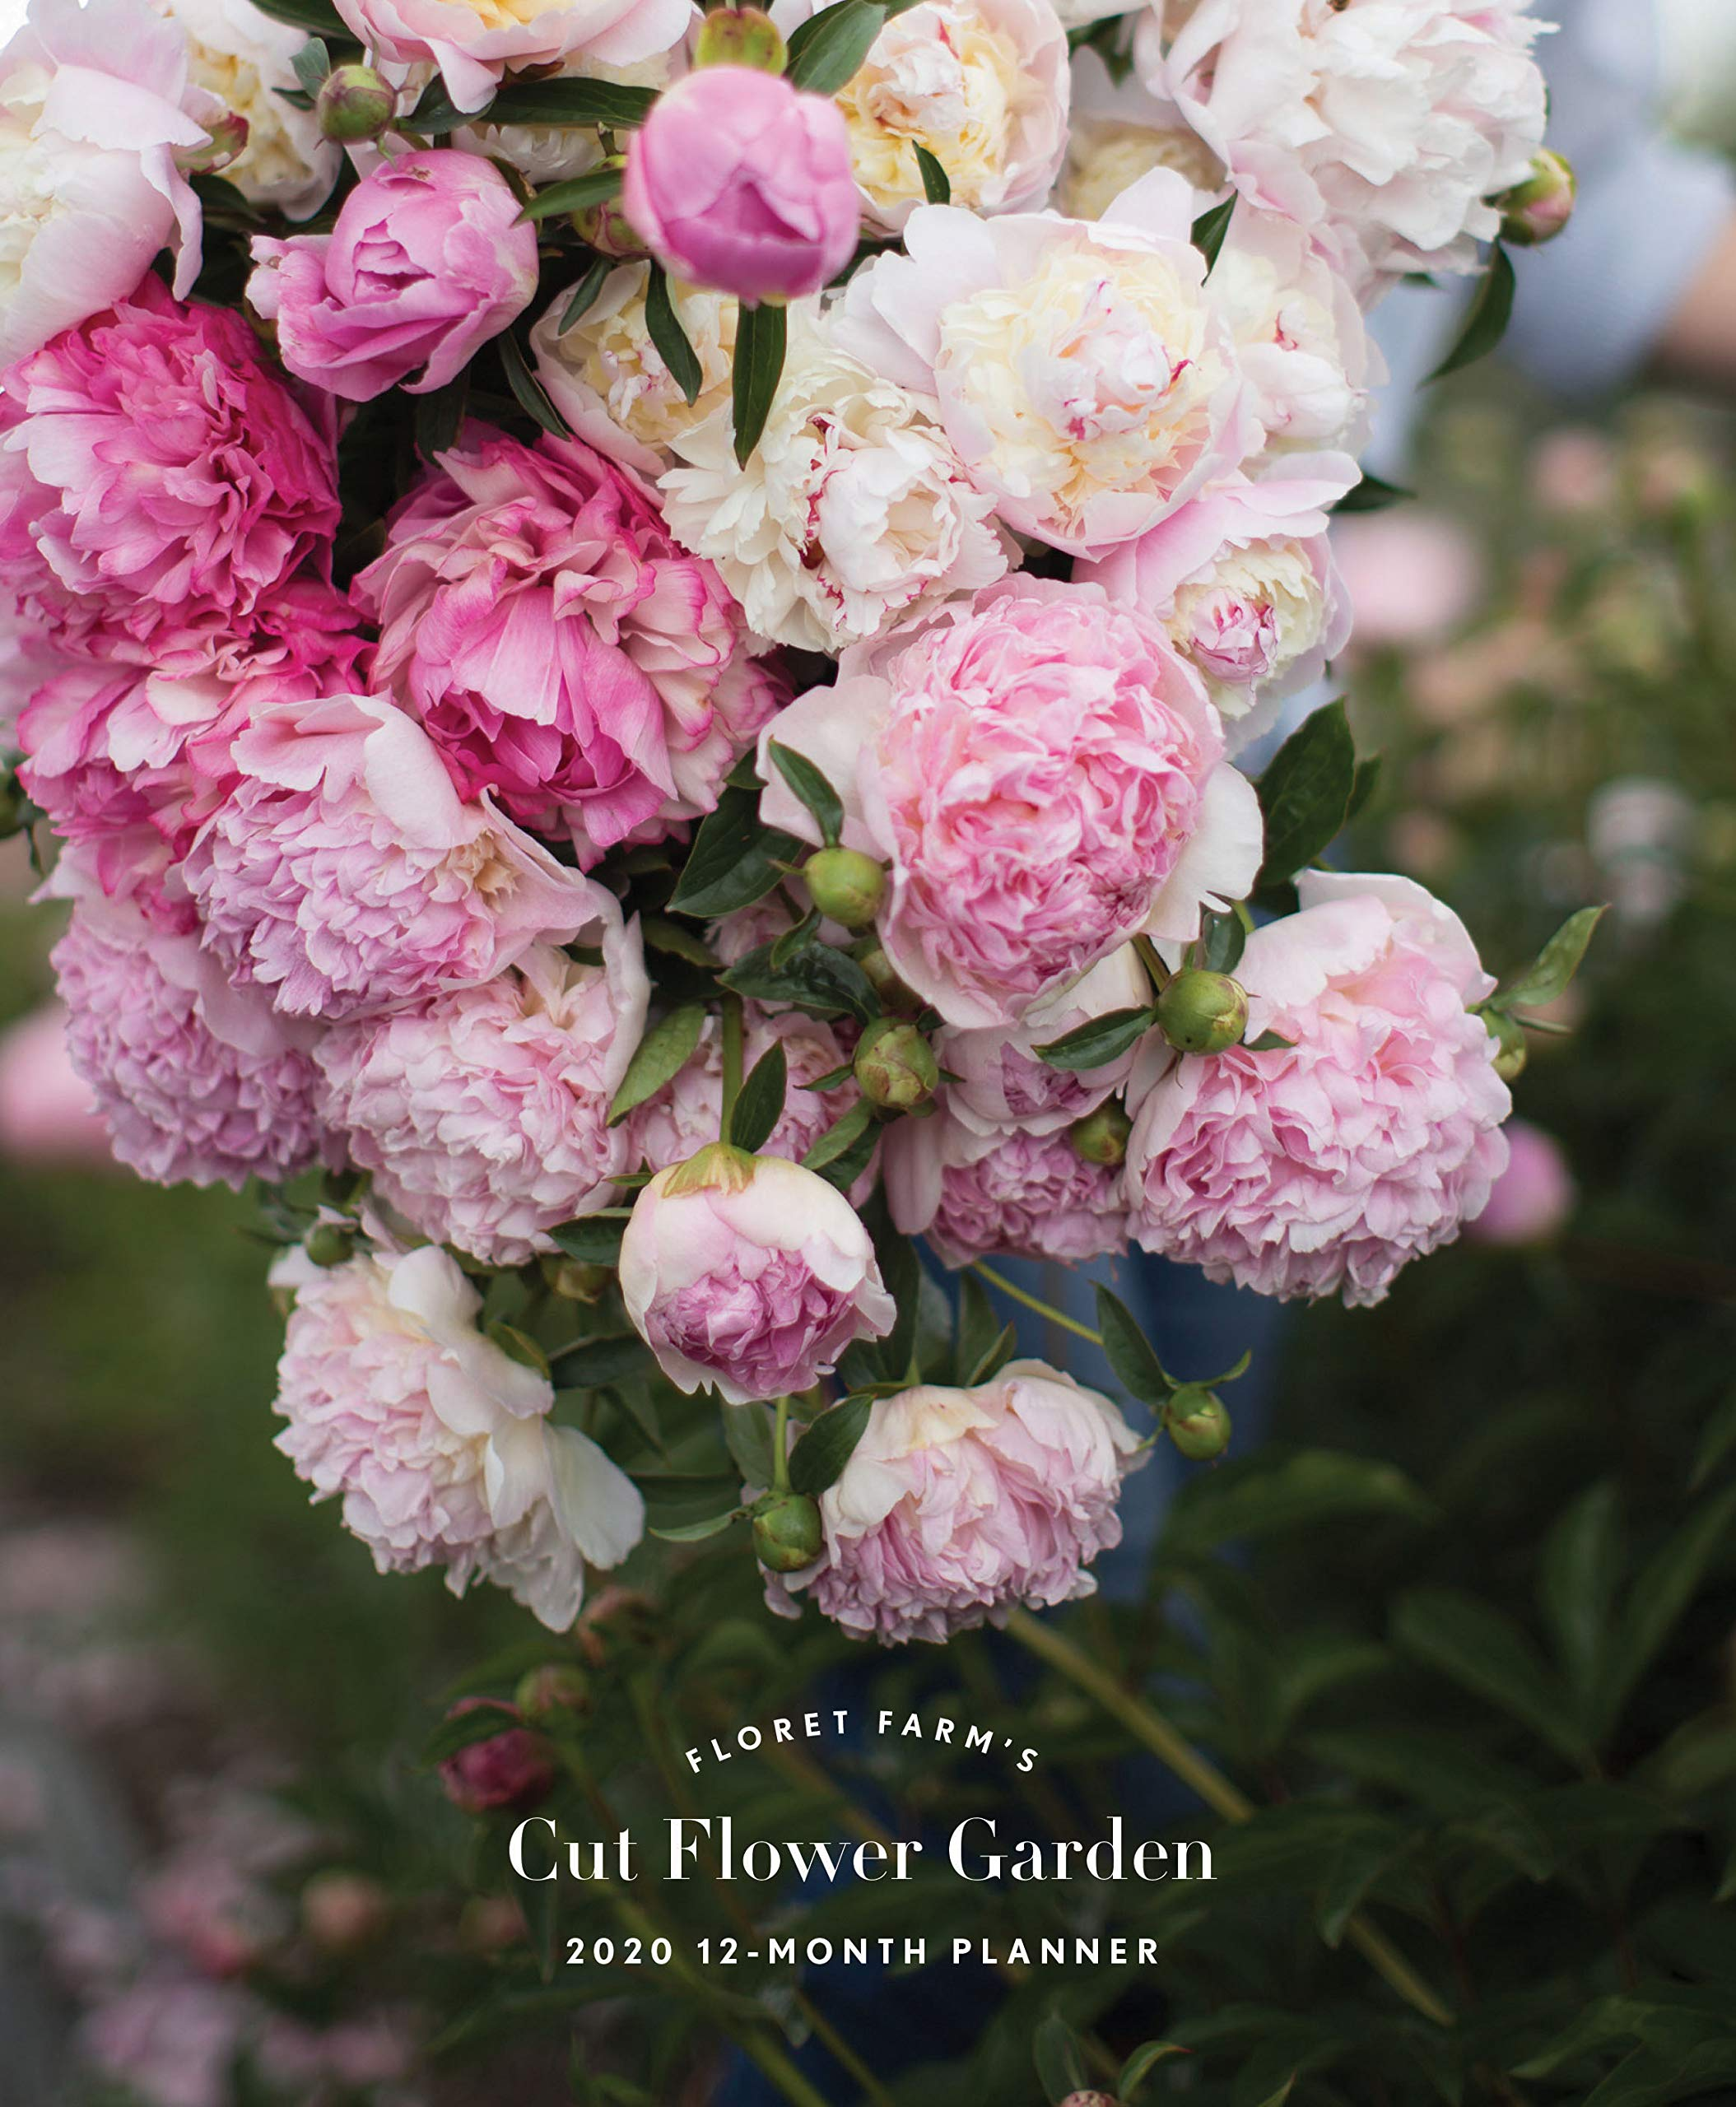 2020 Daily Planner: Floret Farm's Cut Flower Garden